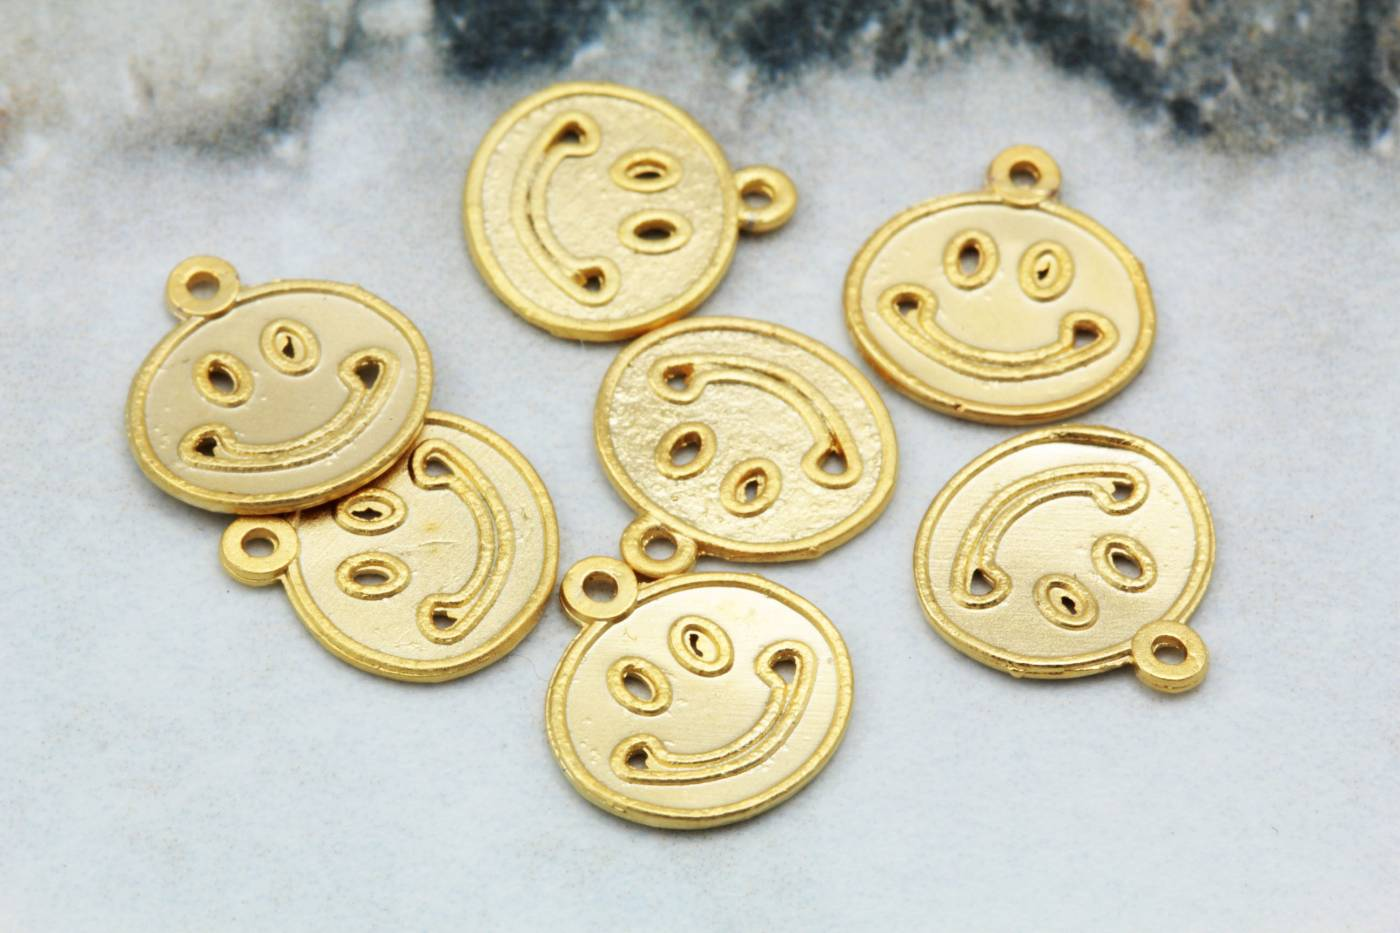 gold-plated-smile-jewelry-pendant-charms.jpg